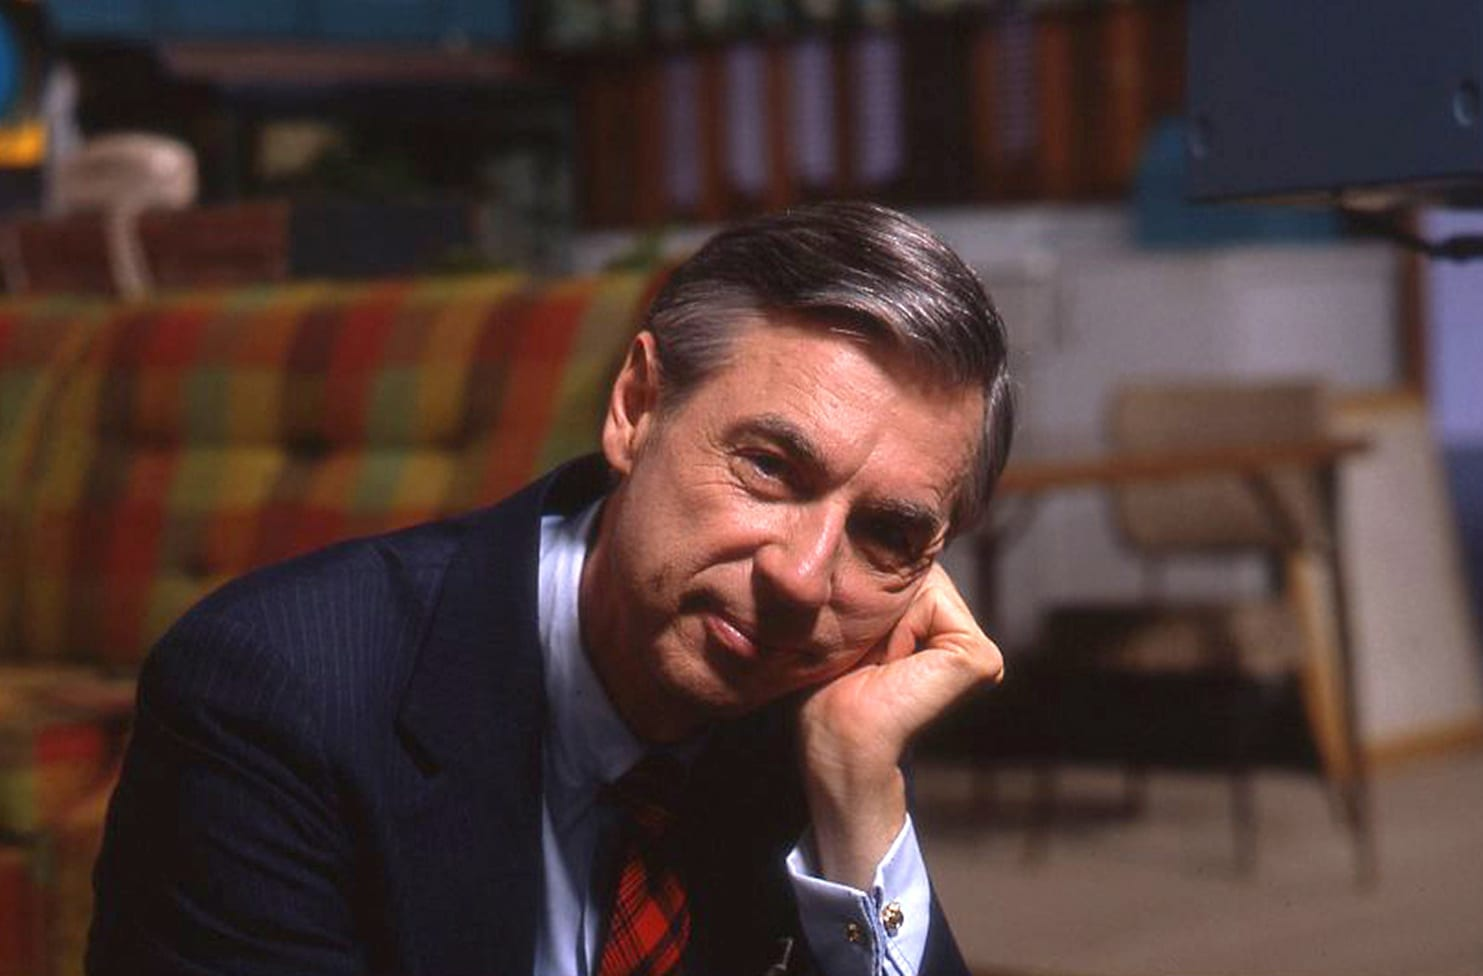 Fred Rogers on the set of his show Mr. Rogers Neighborhood from the film, WON'T YOU BE MY NEIGHBOR, a Focus Features release. Credit: Jim Judkis / Focus Features